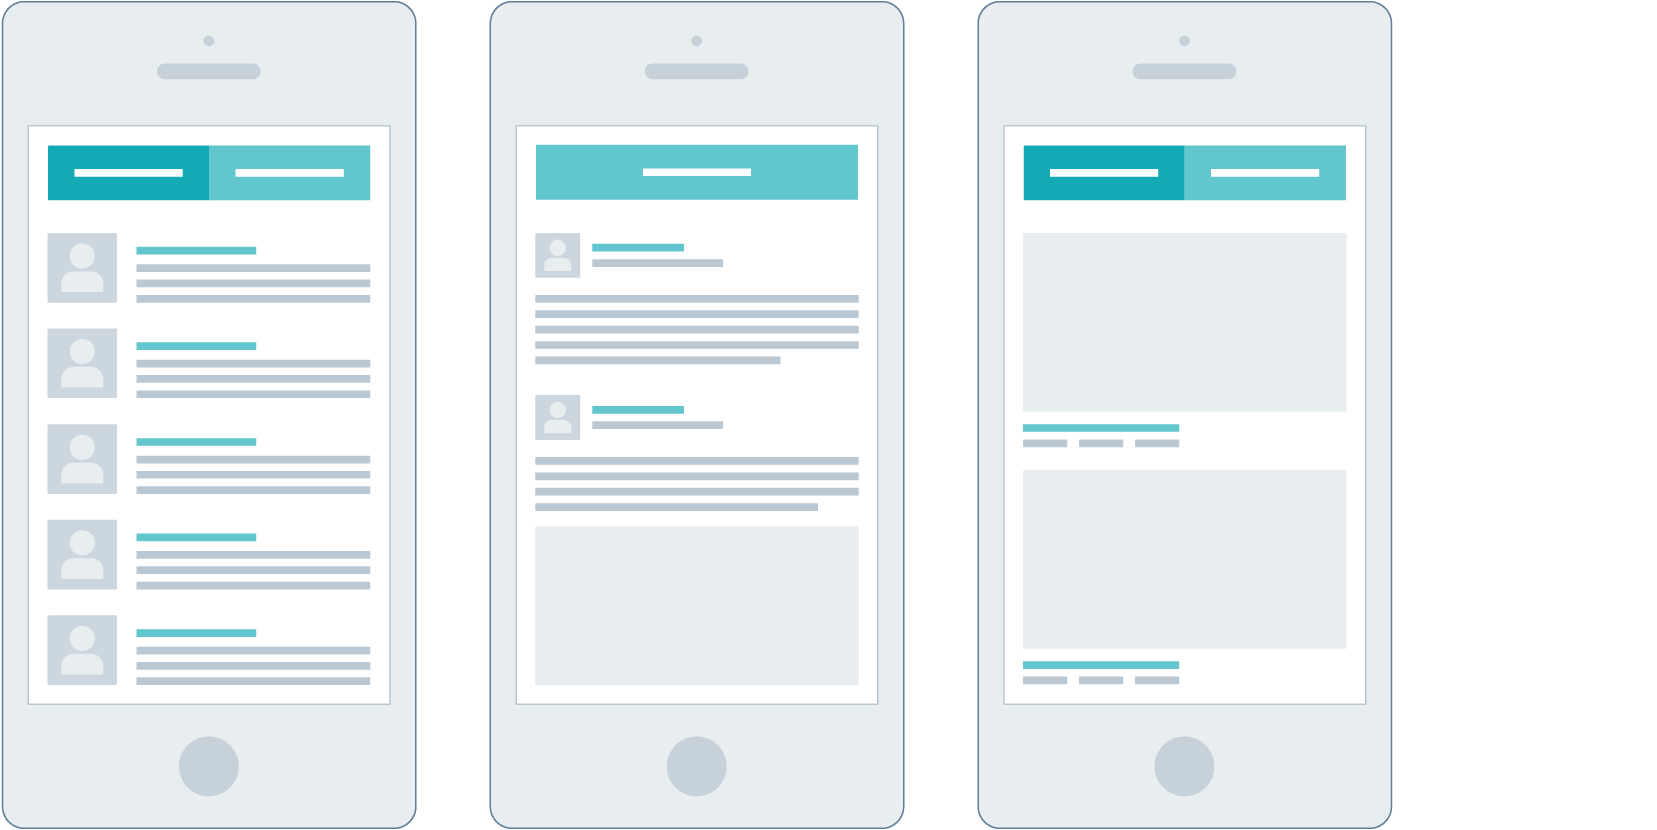 Examples Drawio Program To Draw Circuit In A Similar Way Wireframe Models Mockups Are Used Quickly Prototype User Interface During Application Development These Days They Most Often